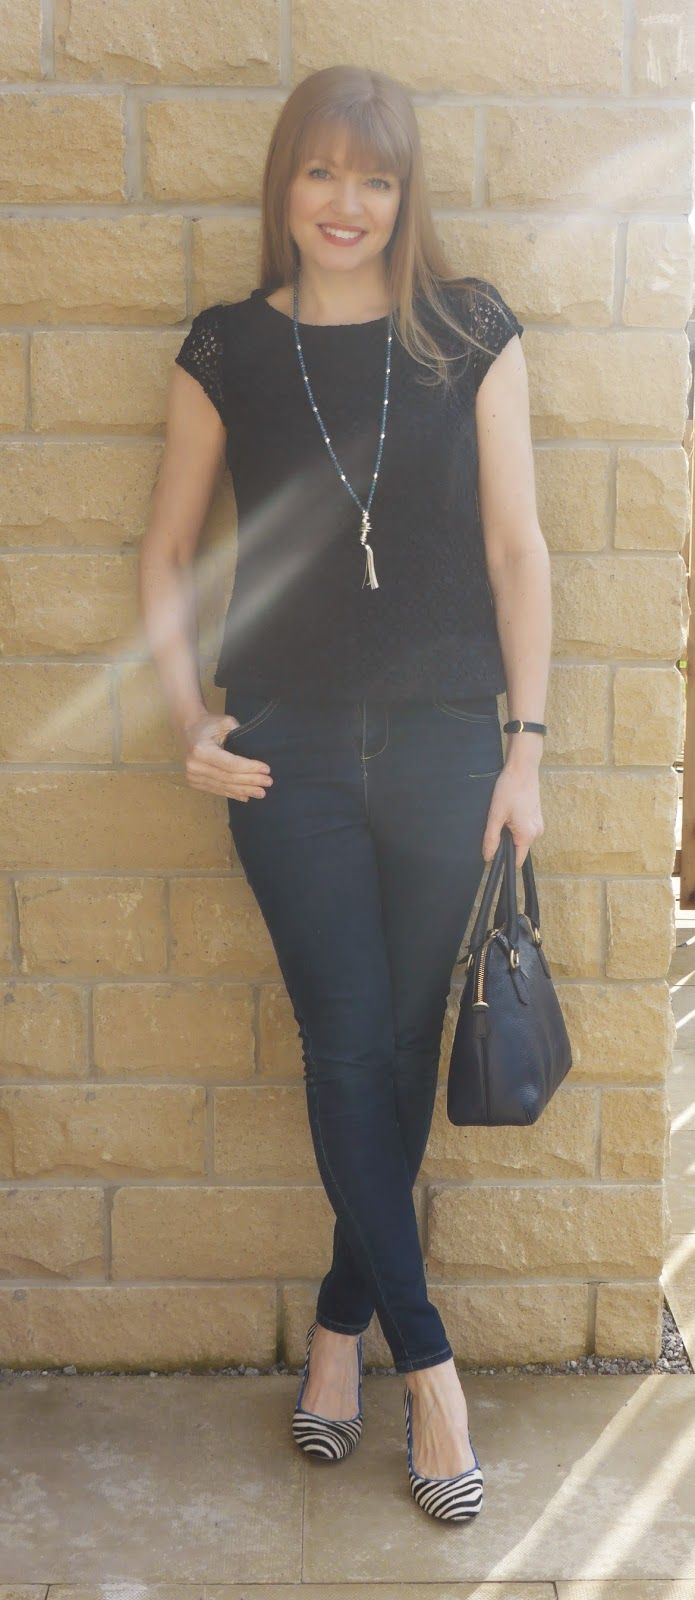 Outfit: Navy Lace Top, Zebra Shoes and Azure Tassel Necklace